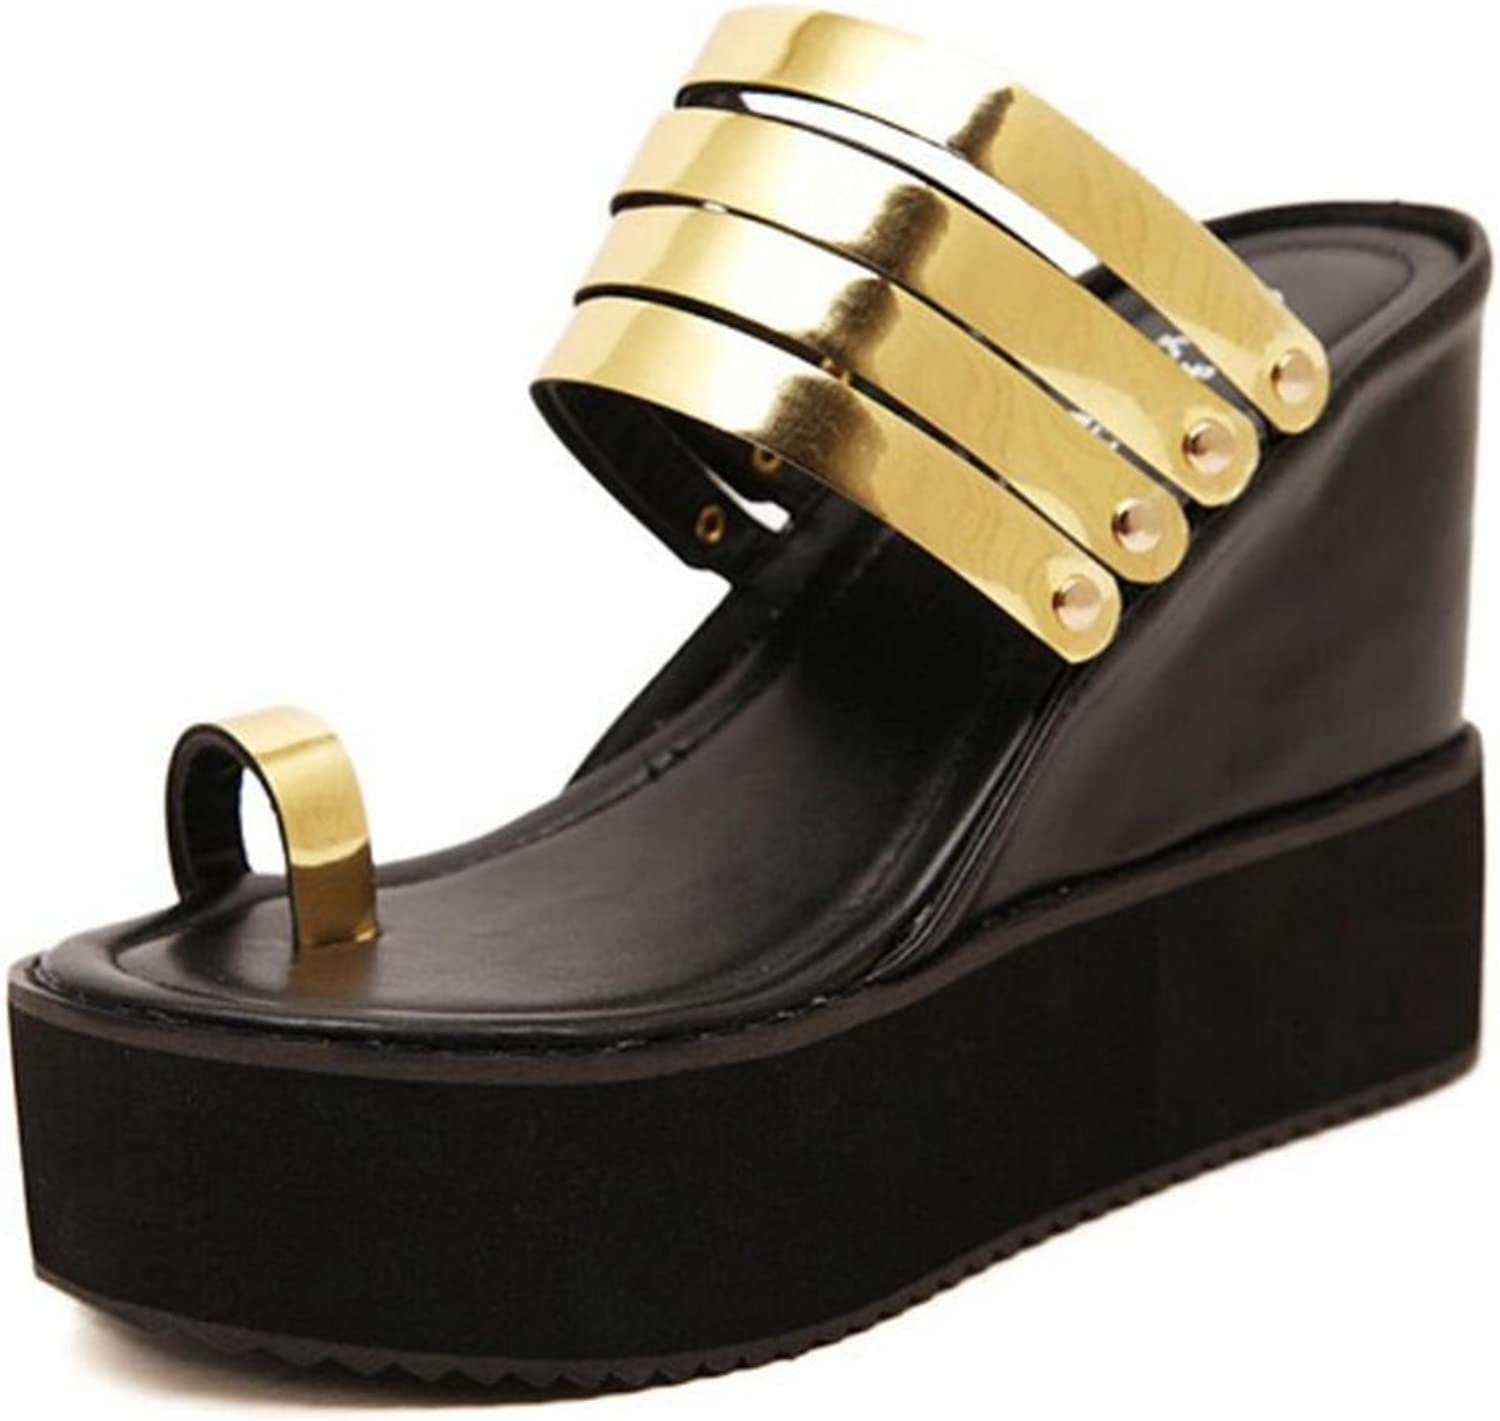 MODEOK Mens Sandals of Gladiator Style Leather Outdoor Sandals Fashion Casual Comfortable Sandals